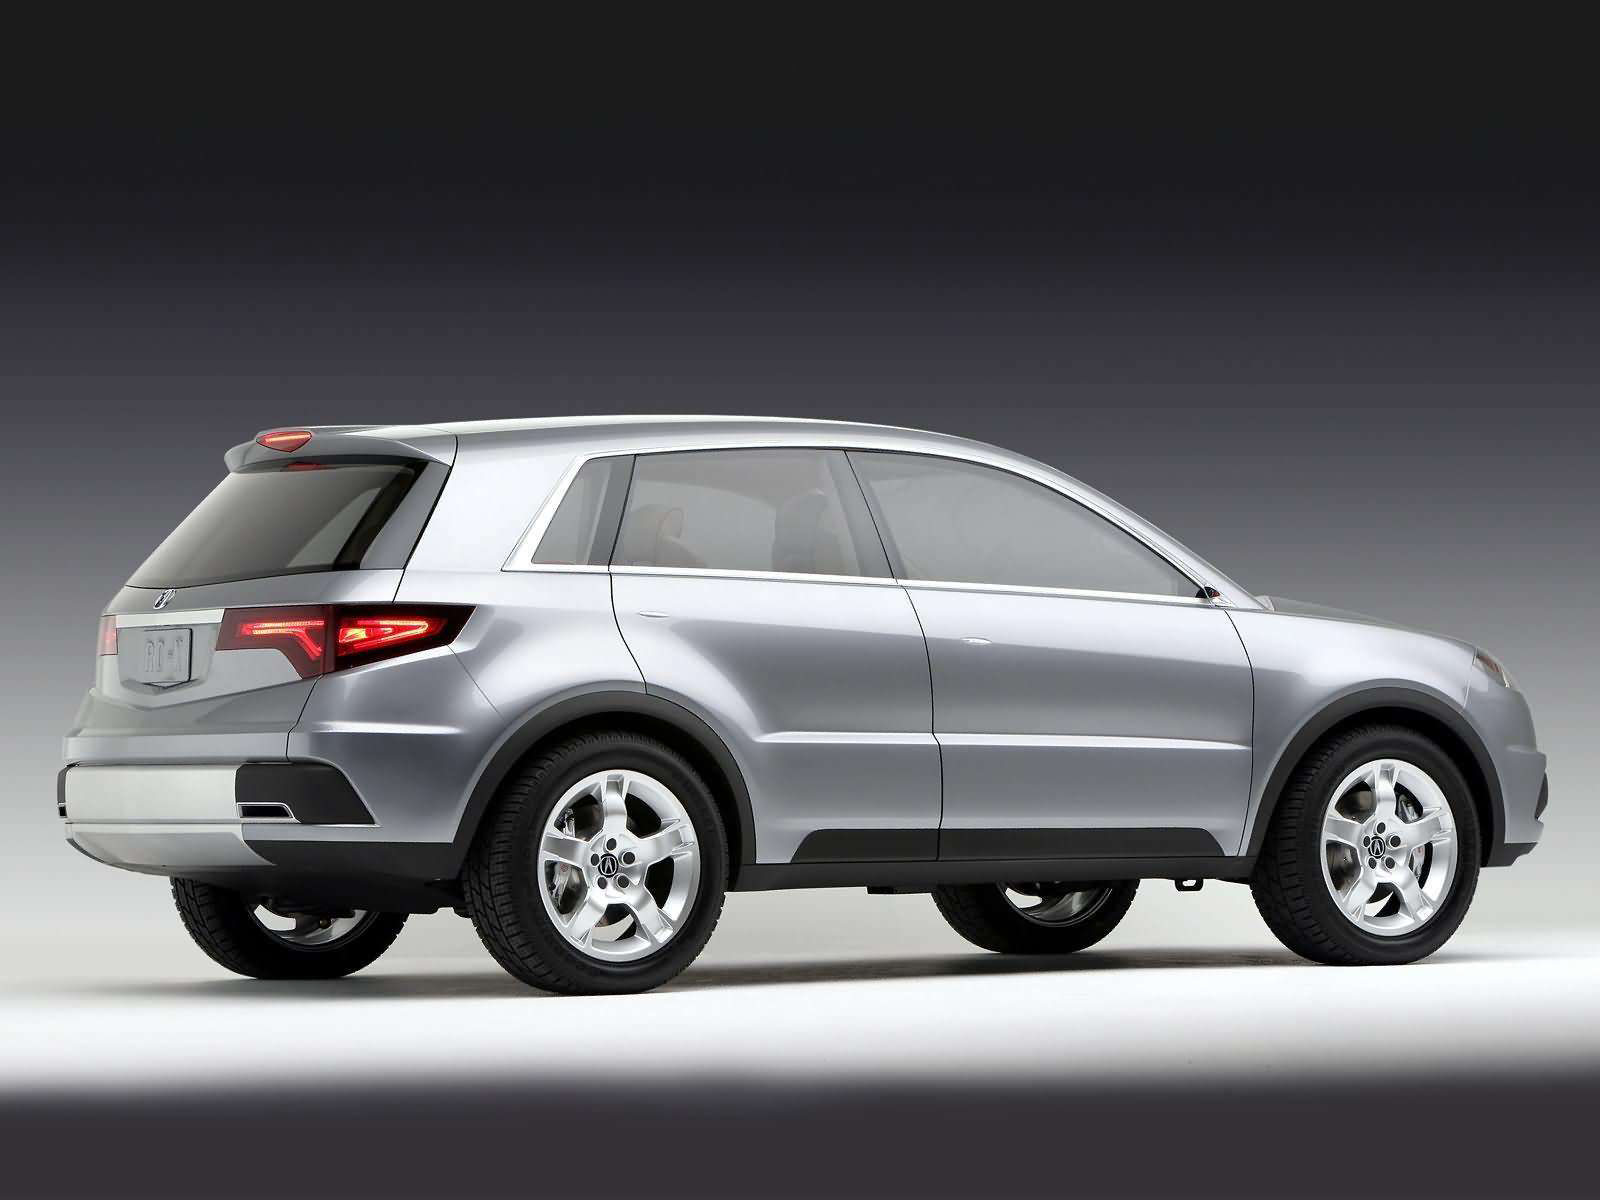 Acura Rdx Concept Japanese Car Wallpapers